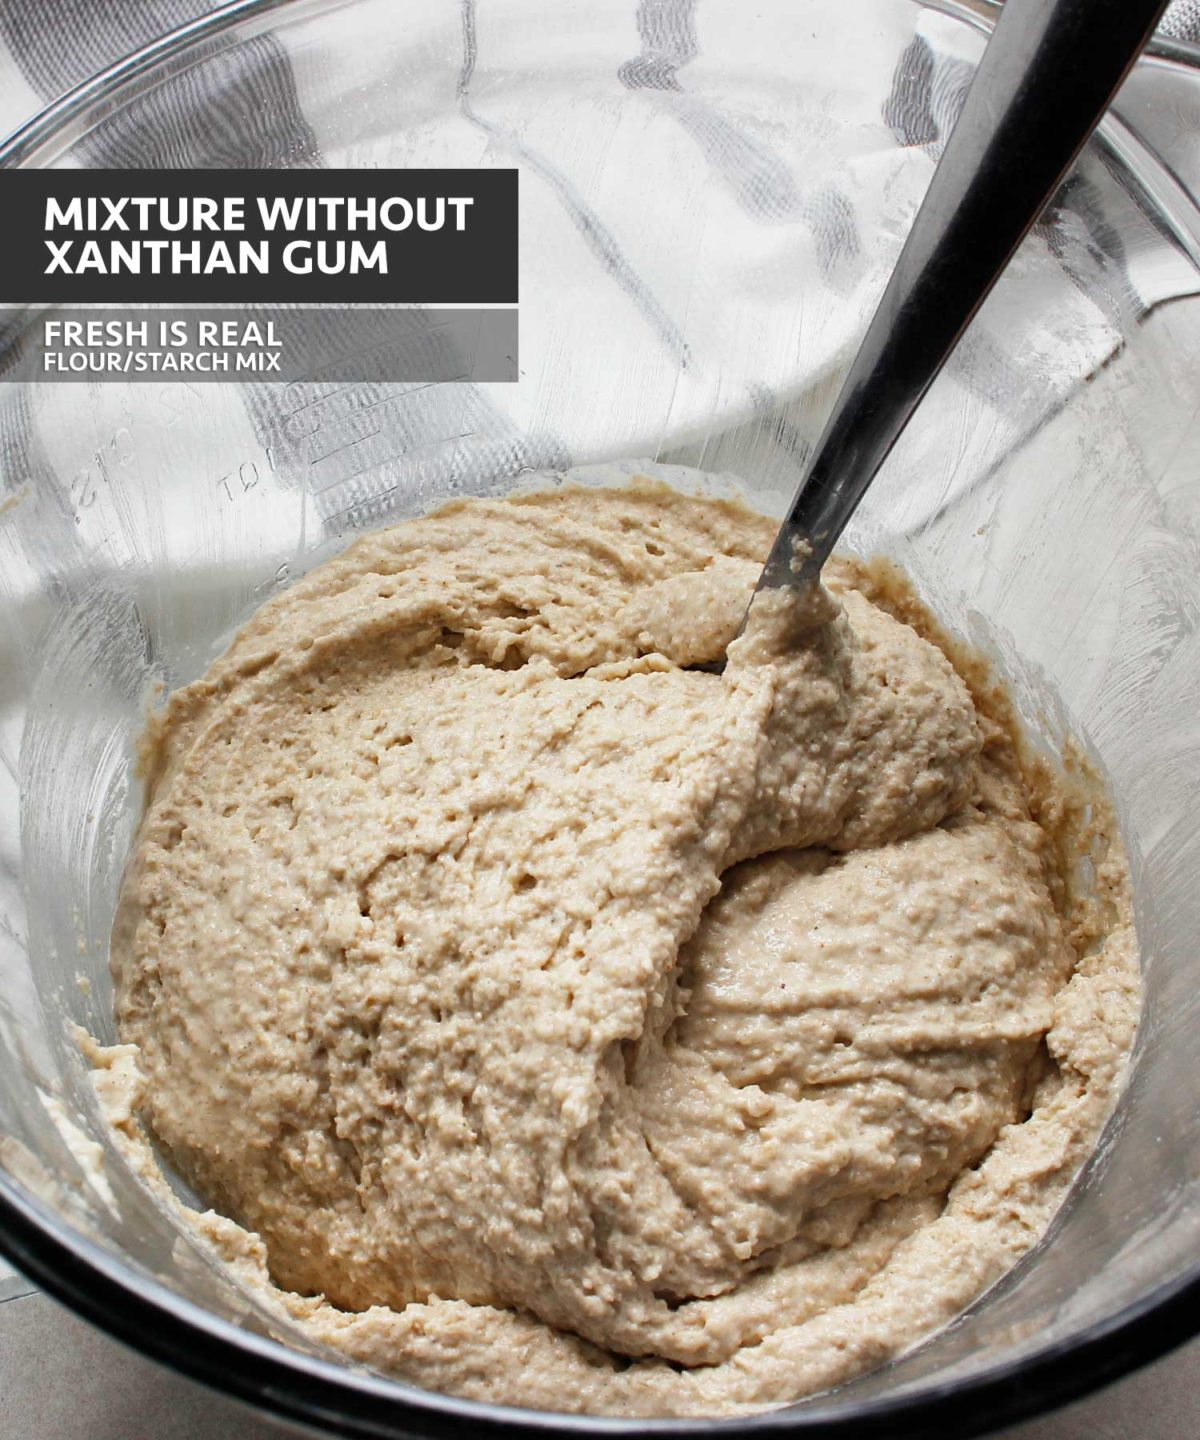 Yeast-free gluten-free vegan dough mixture prepared with a custom mix of GF starches and flours with no xanthan gum.